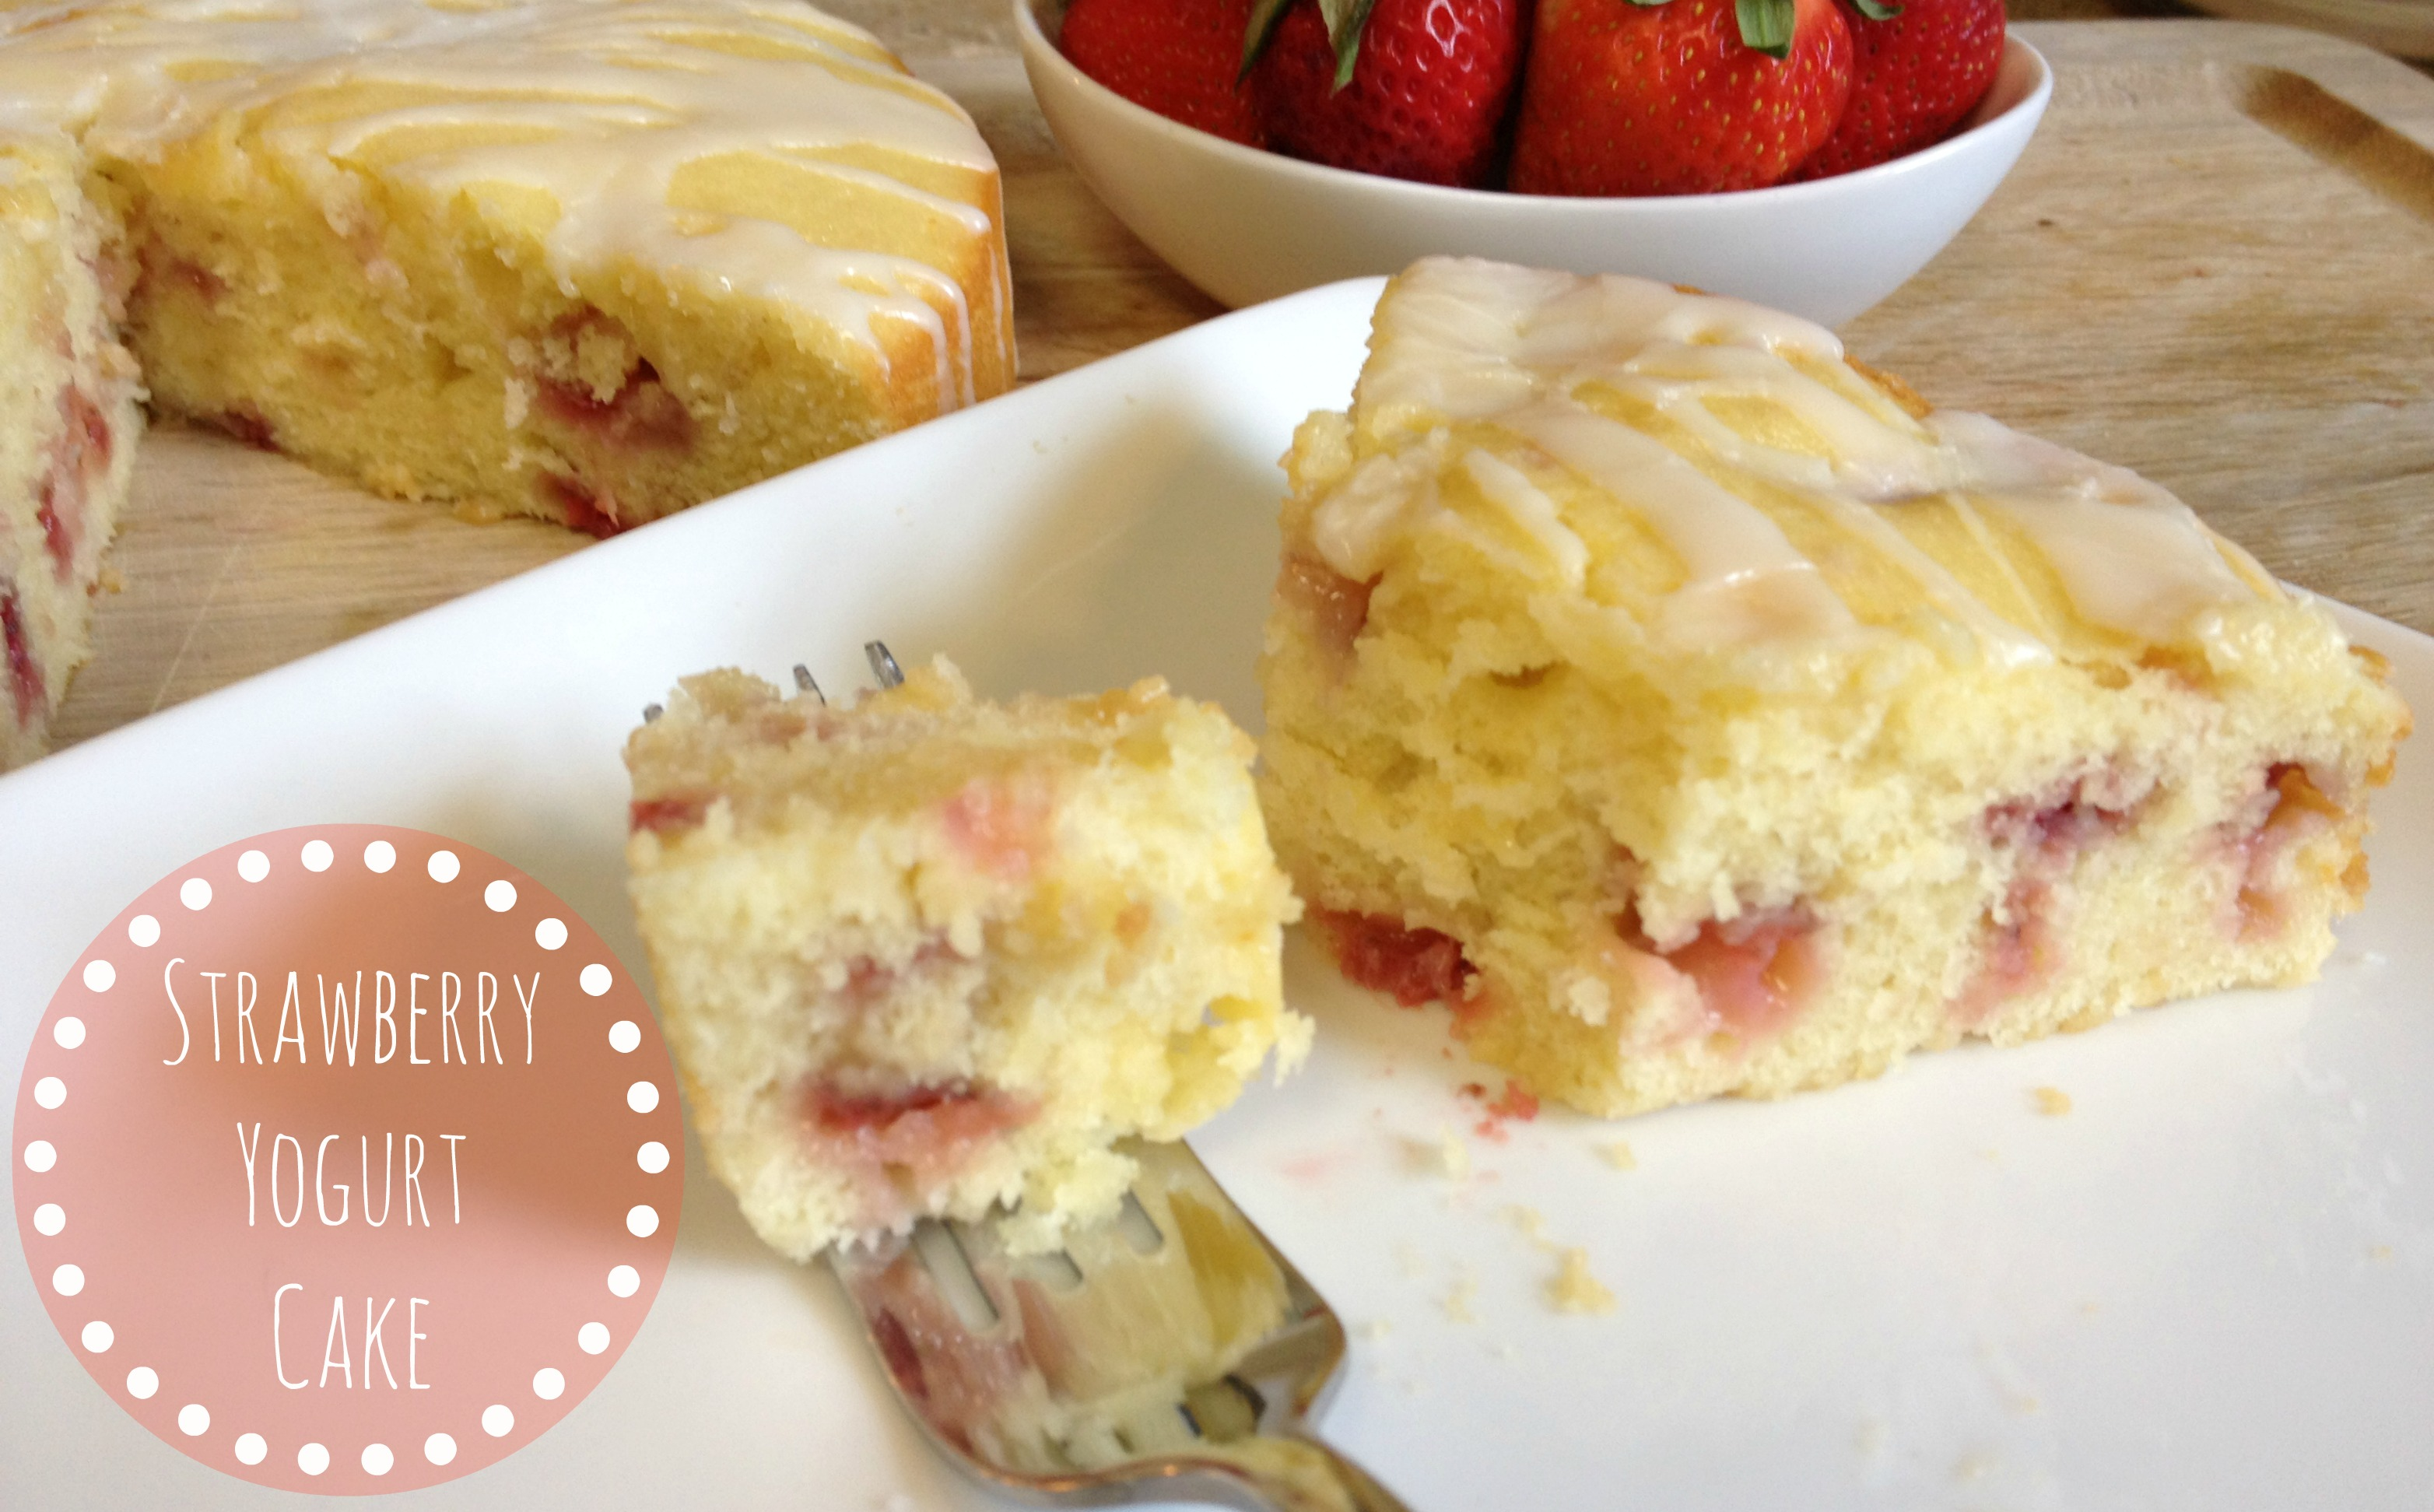 ... yogurt cake fresh strawberry lemon yogurt fresh strawberry yogurt